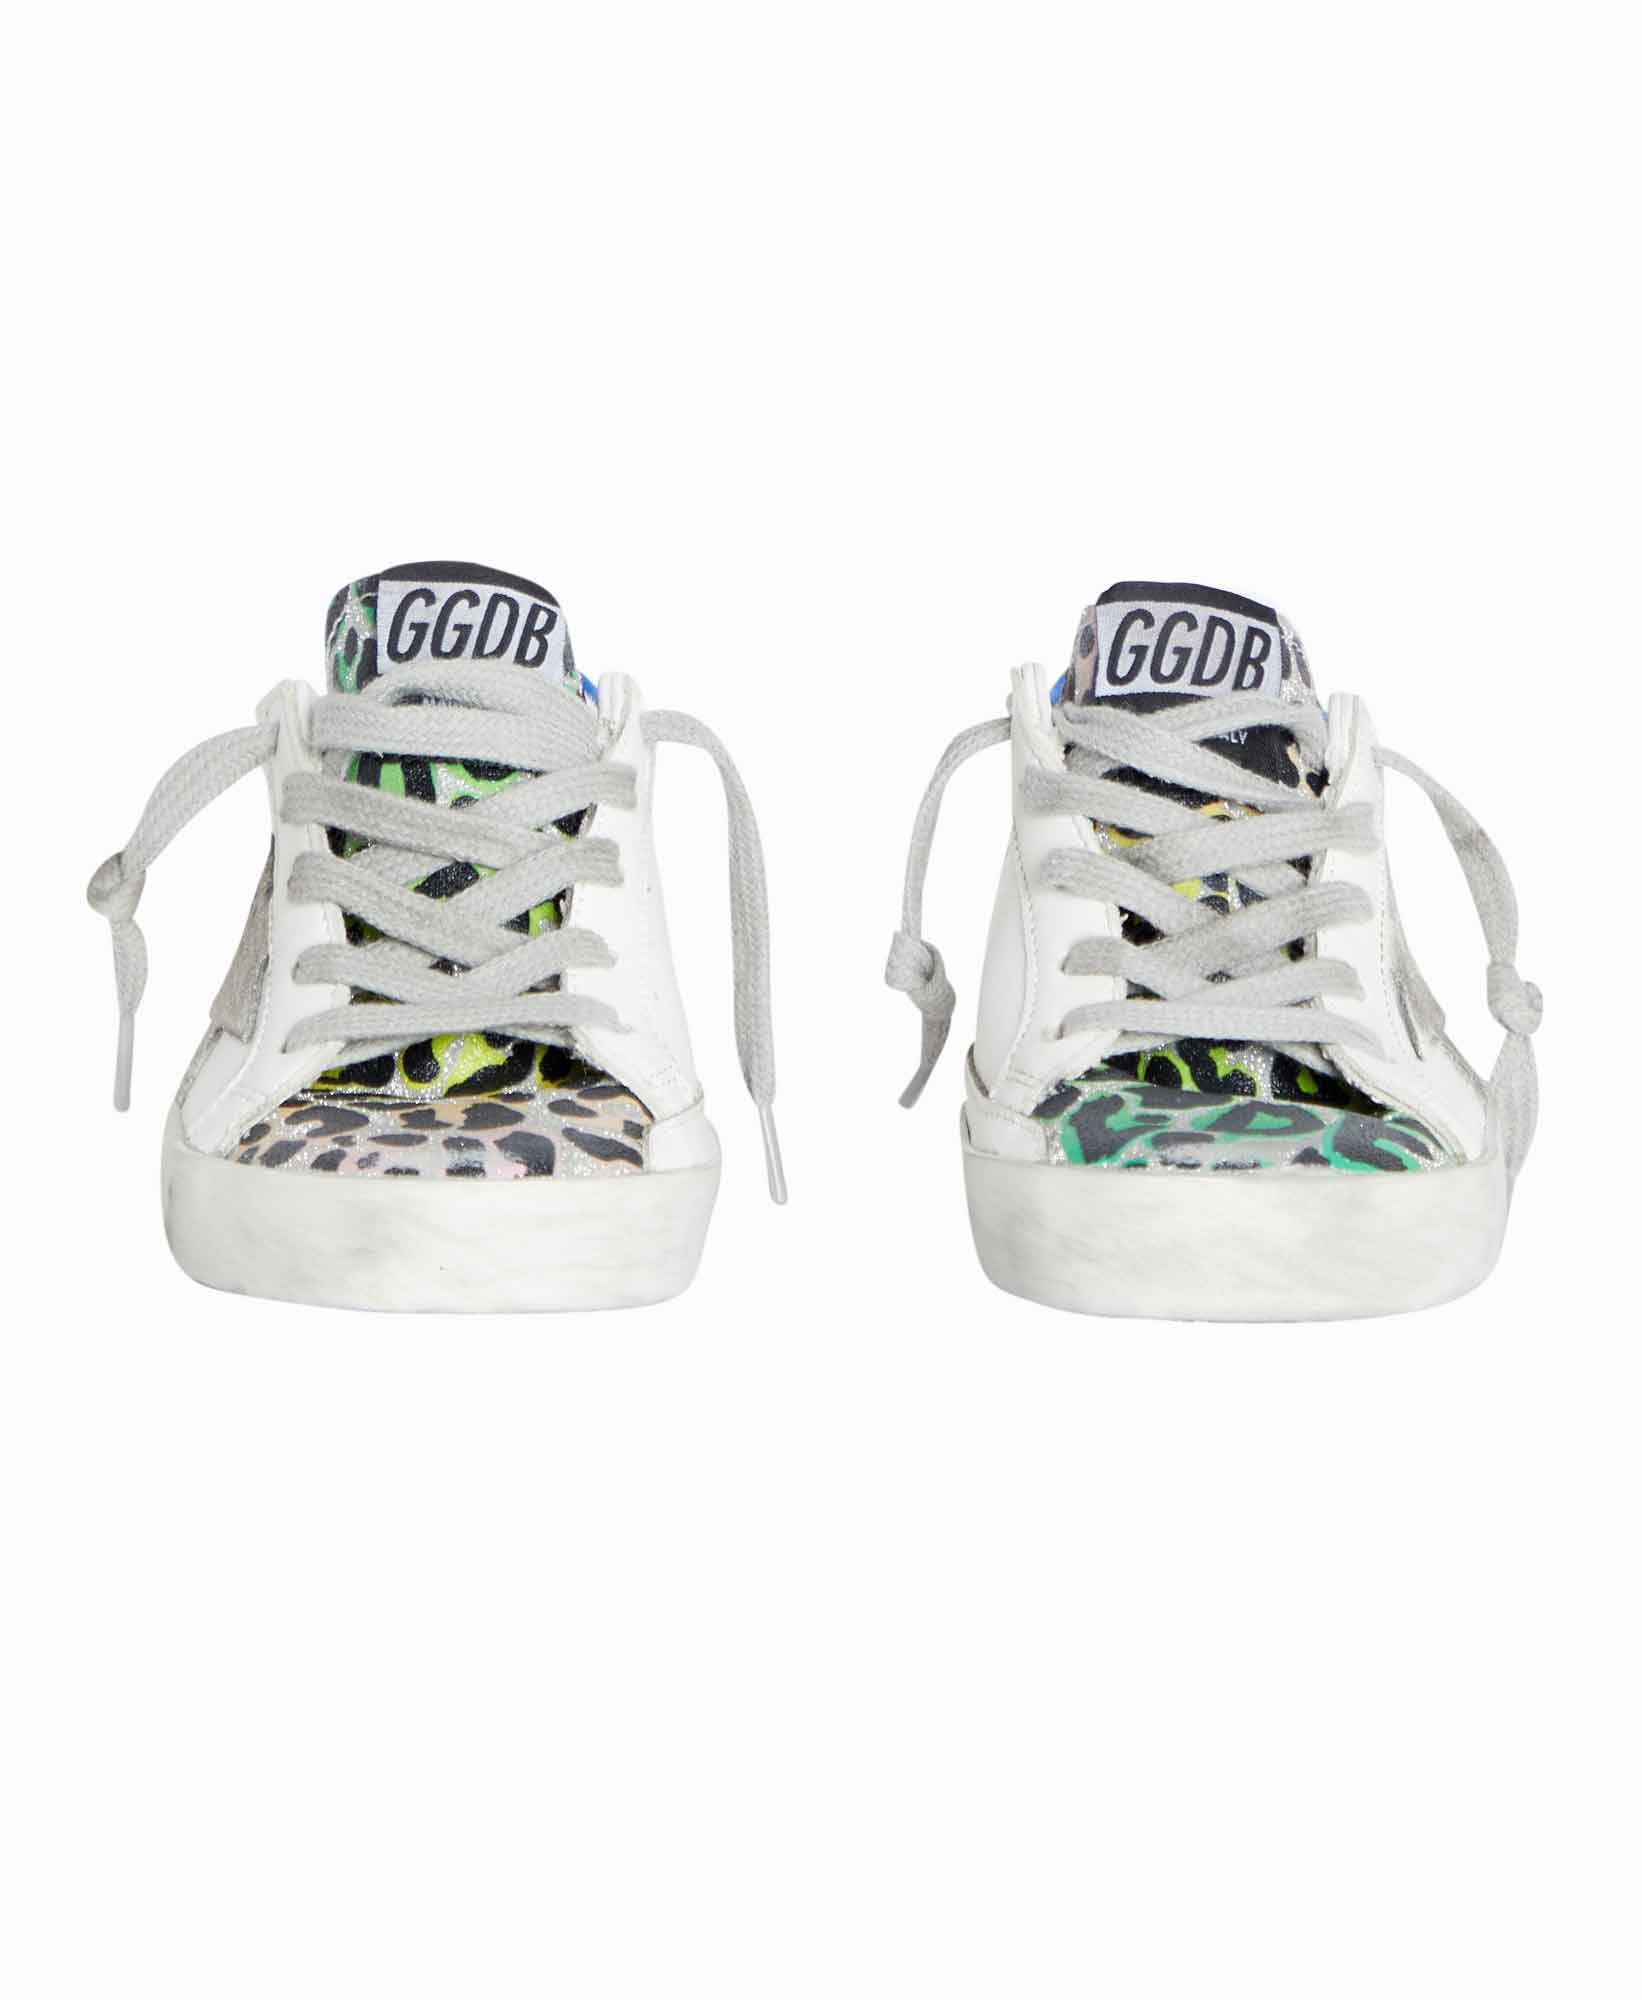 Golden Goose Superstars Sneakers